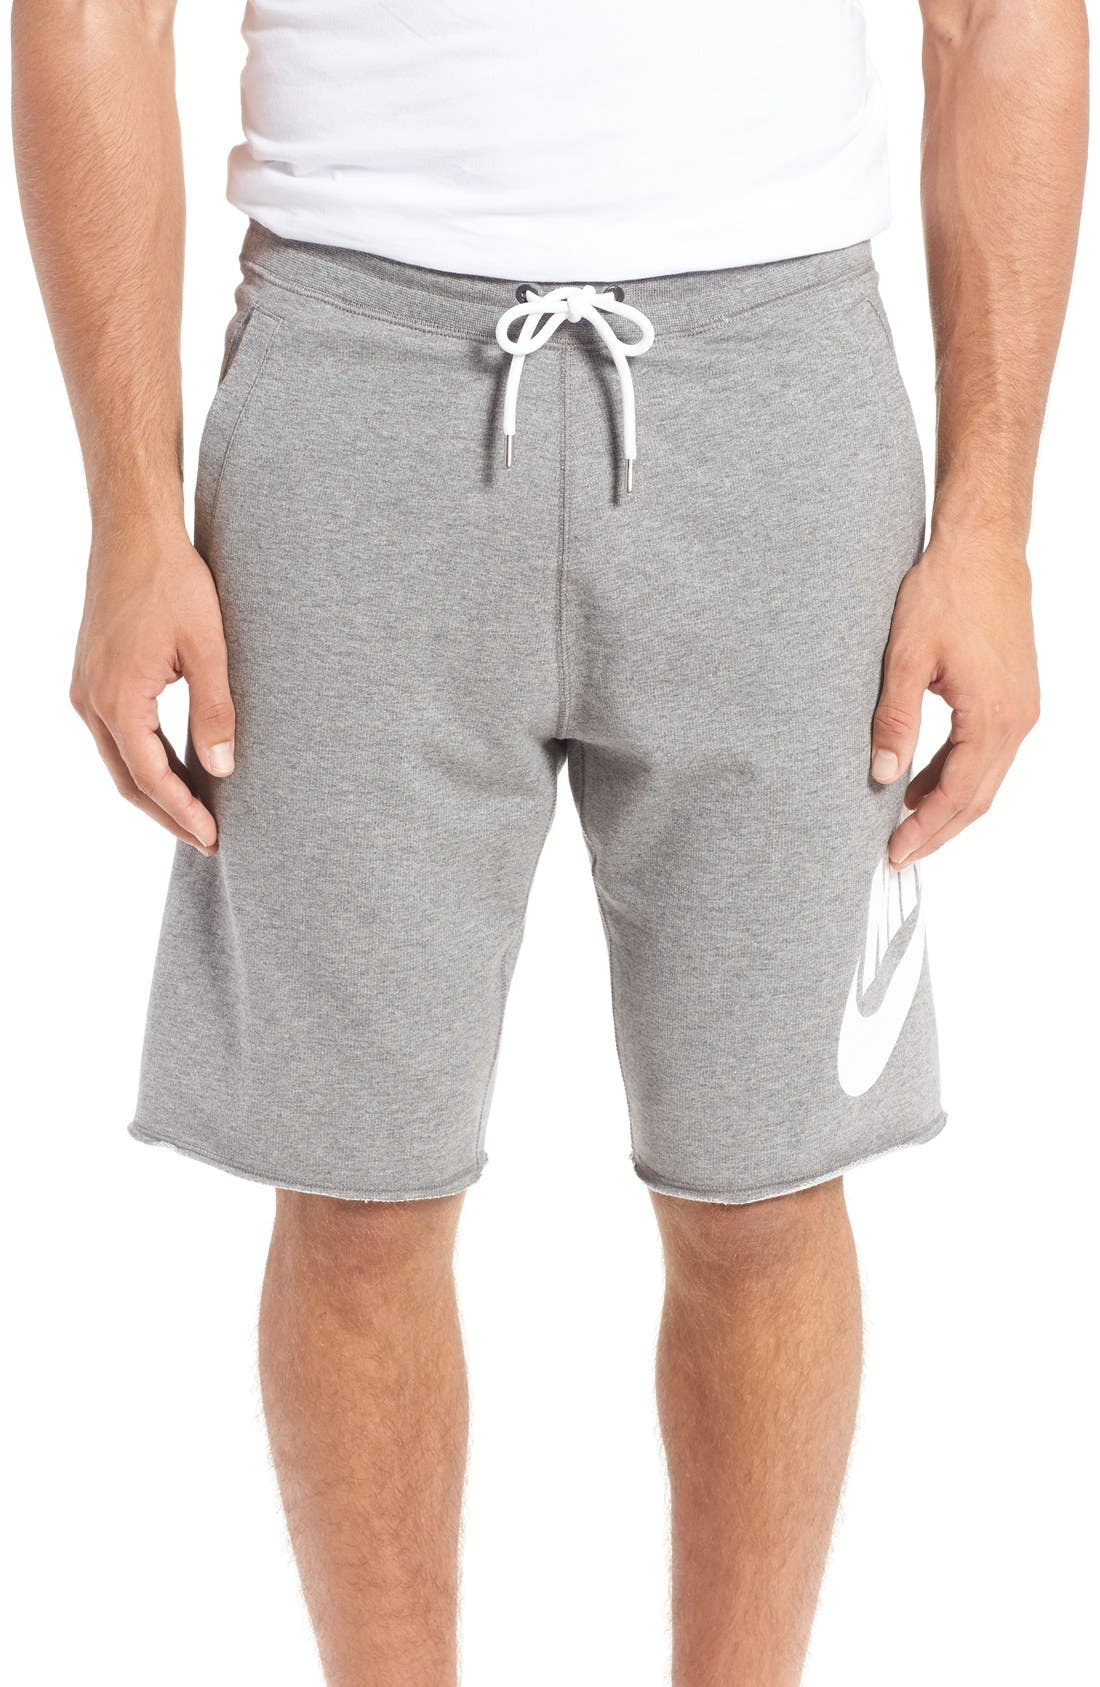 outlet store 41953 5a6af ... 836277-091 Carbon Grey French Terry Cotton UPC 886549066154 product  image for Mens Nike Nsw Logo French Terry Shorts, Size